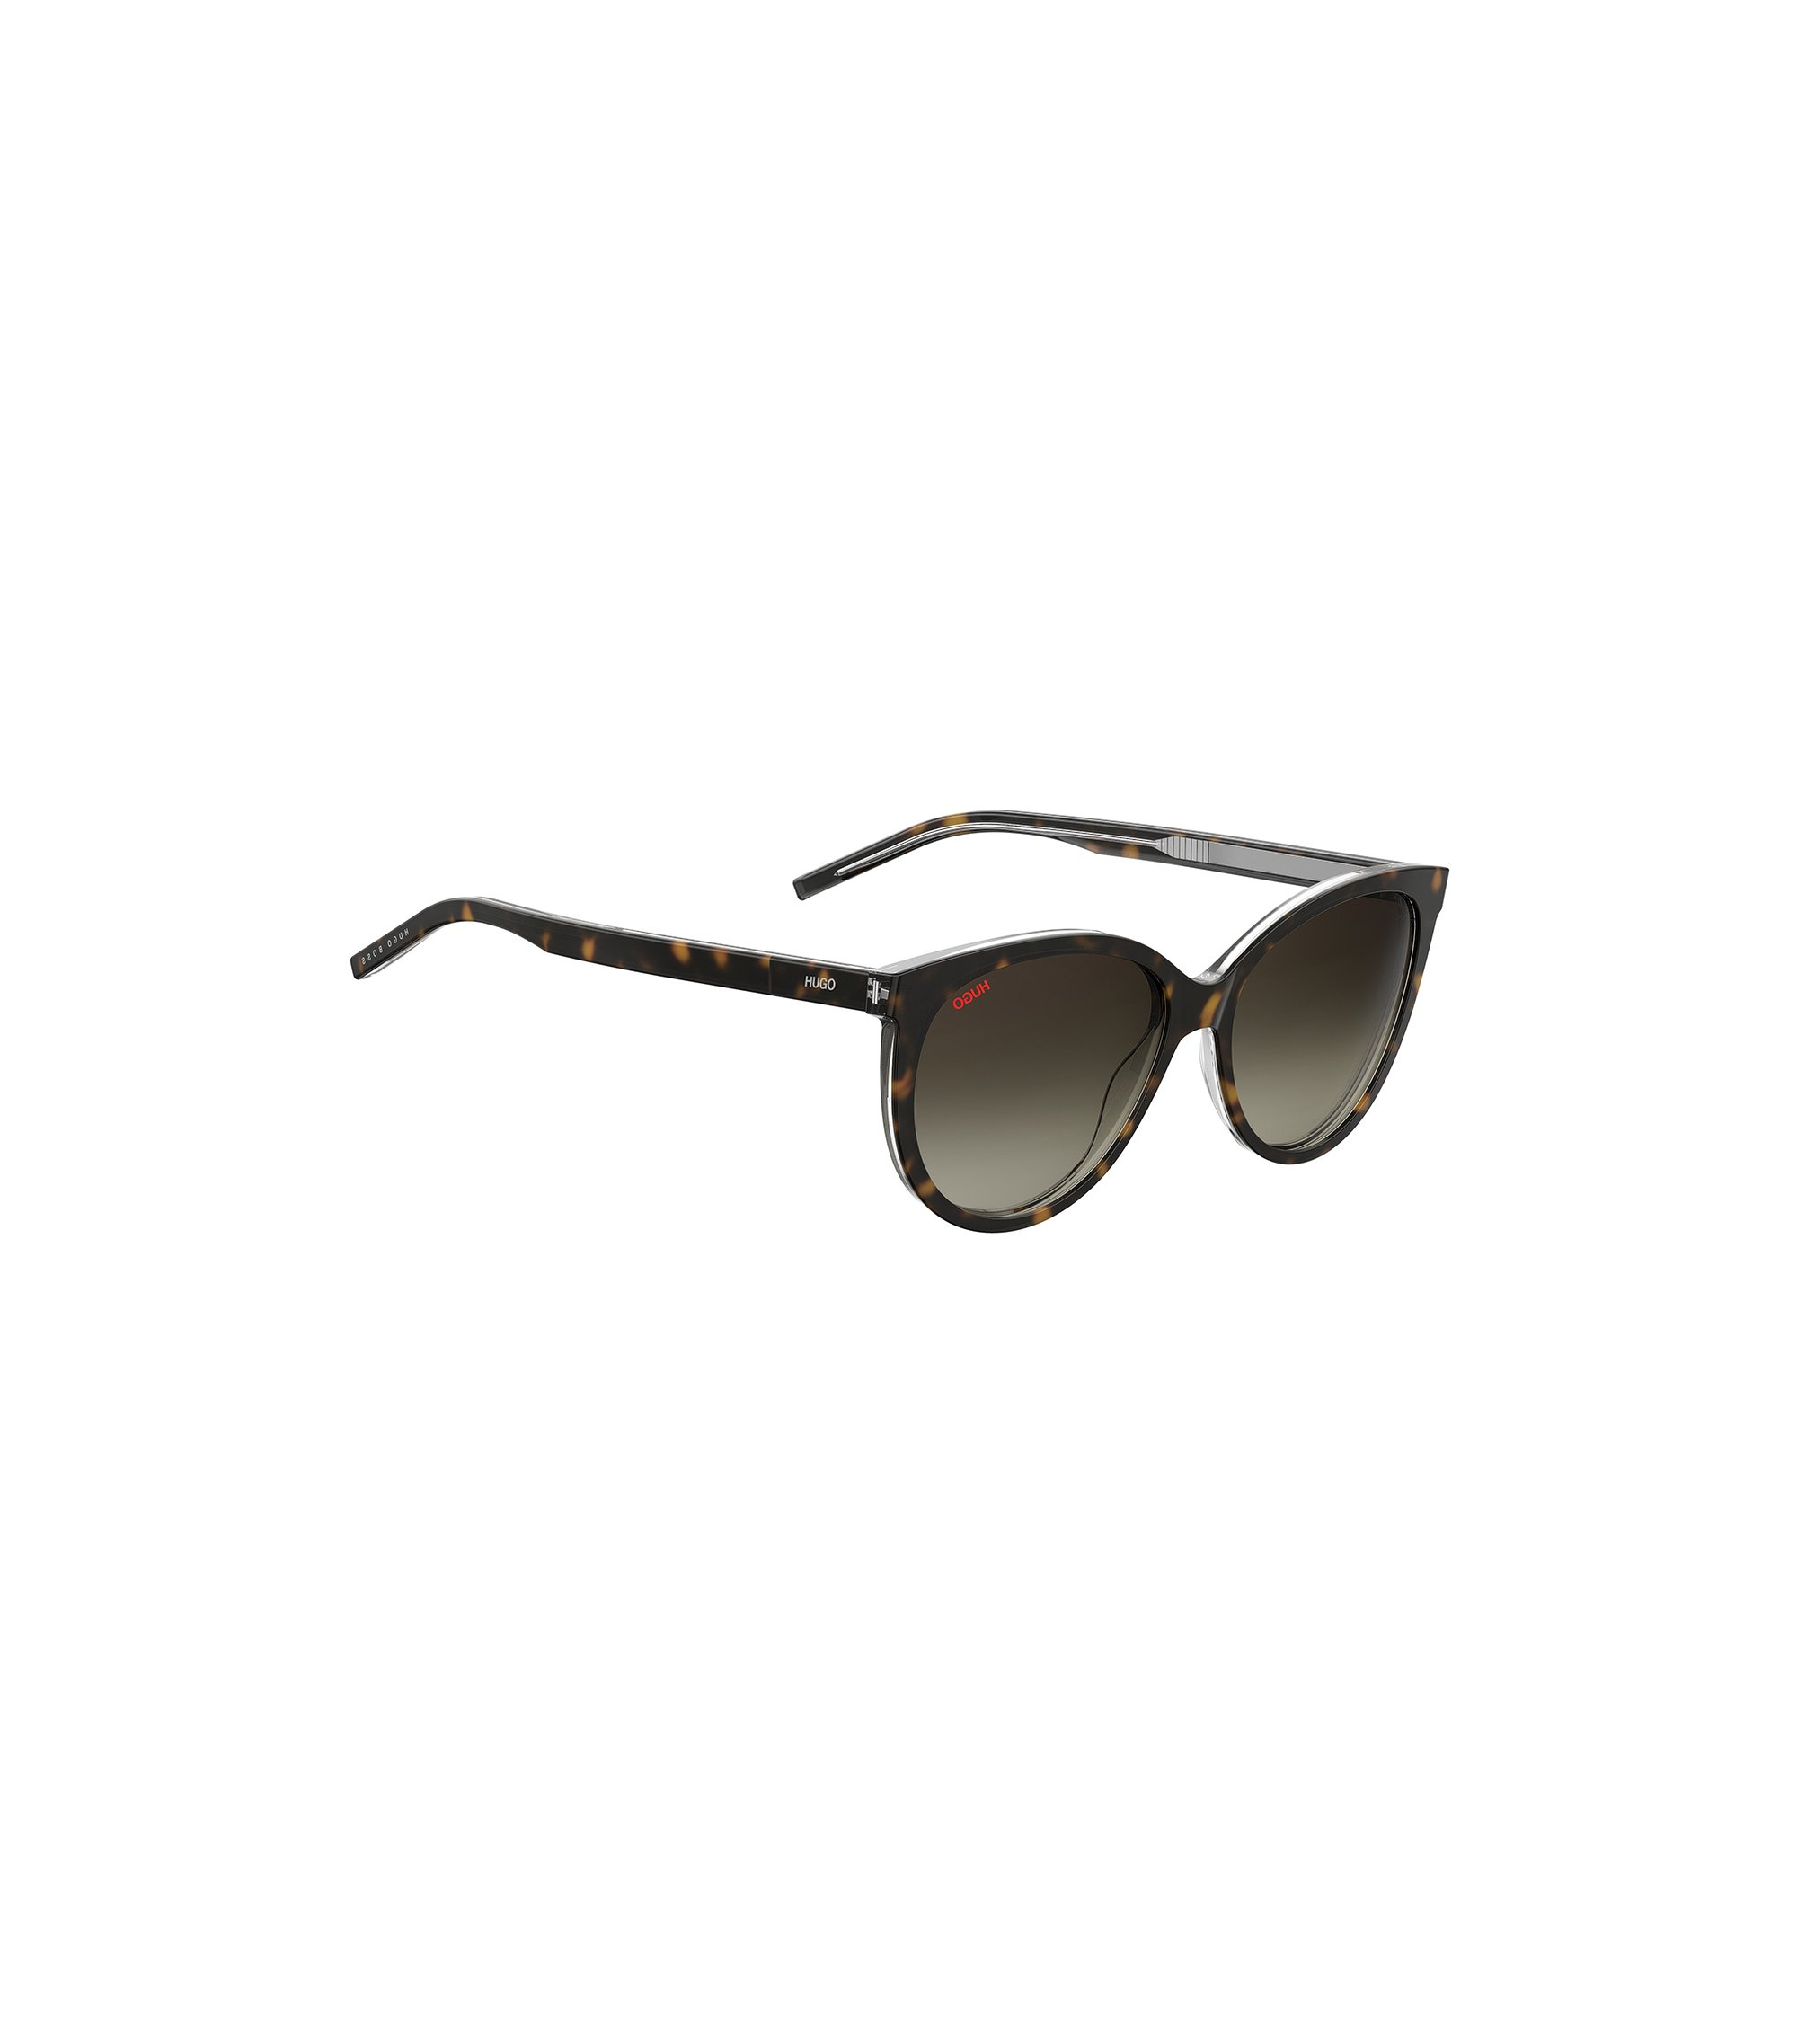 Reverse-logo sunglasses in dark Havana acetate, Patterned